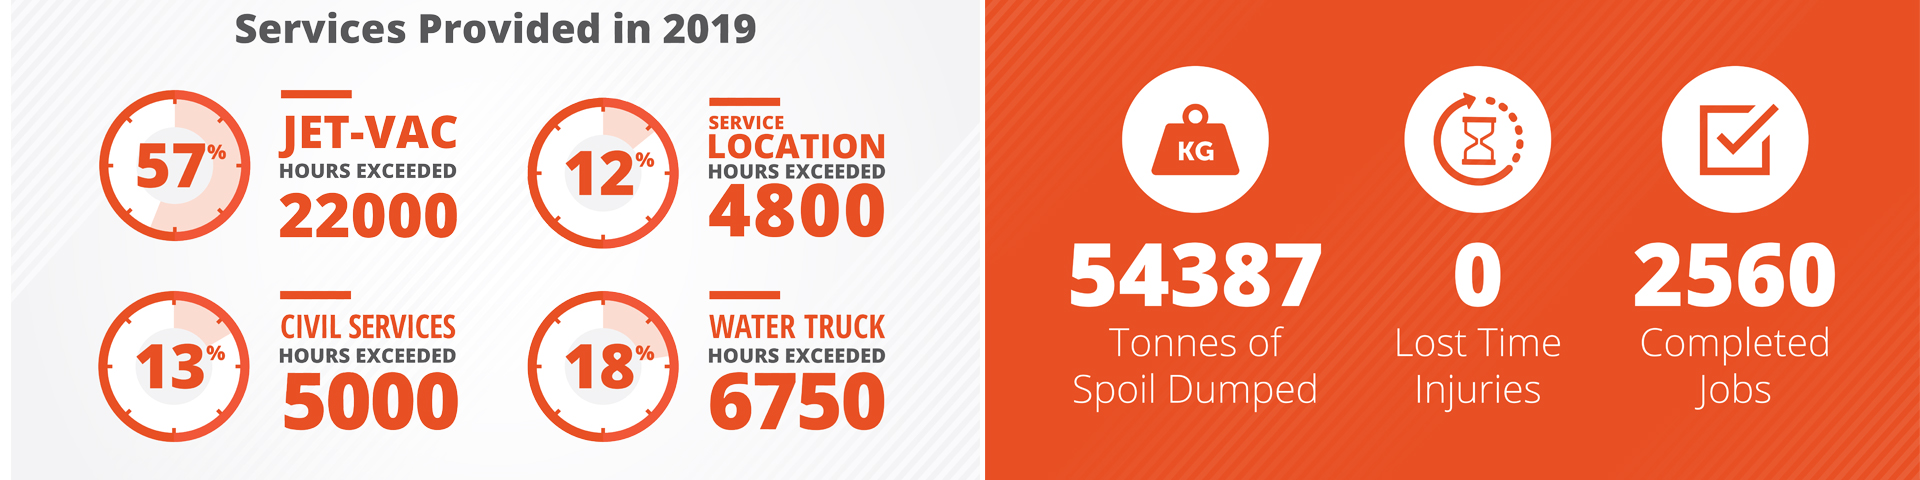 stats on our services for 2019